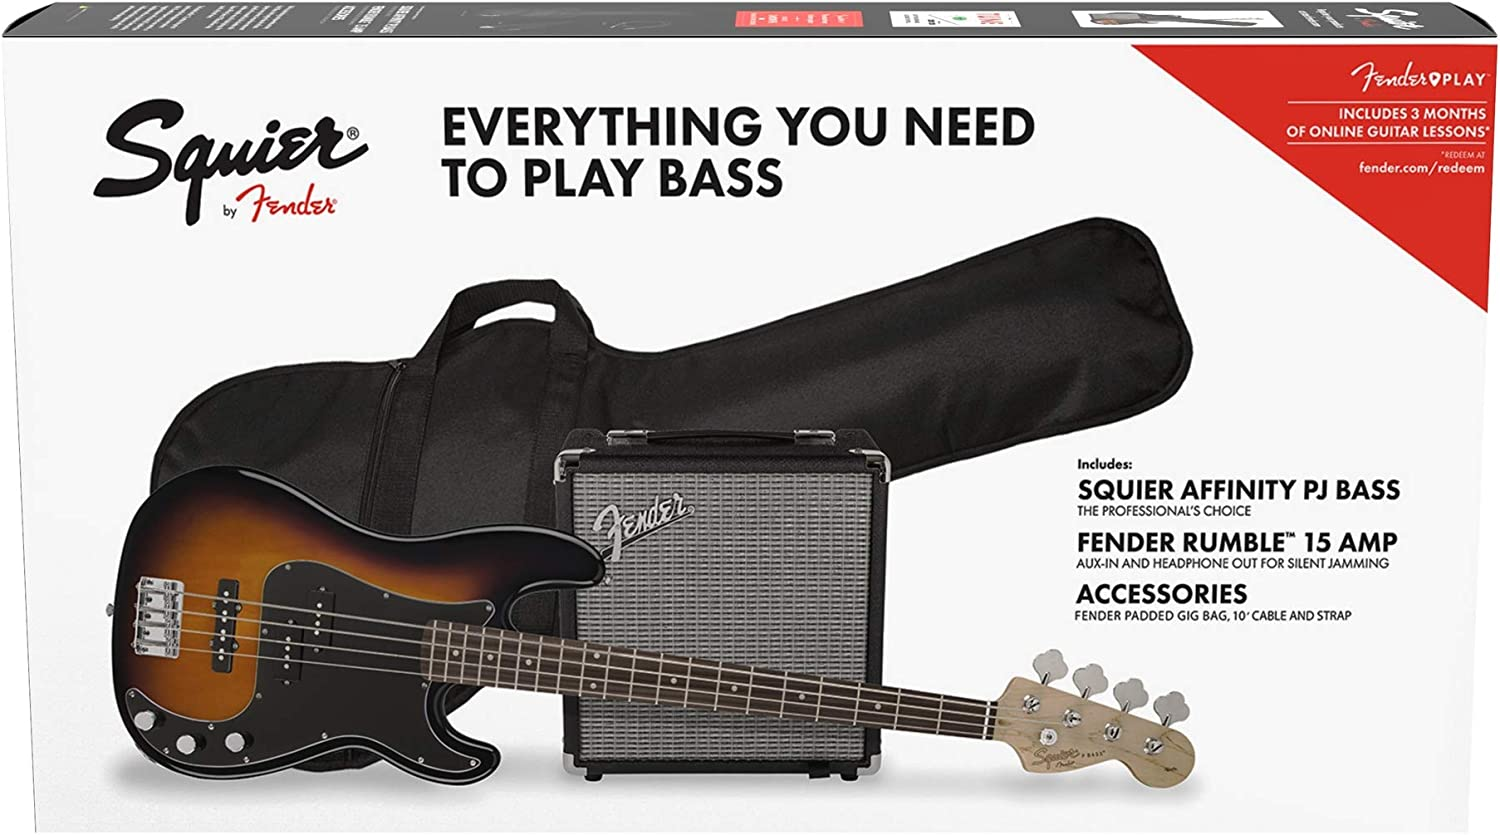 Squier by Fender Affinity Series Precision Bass PJ Beginner Pack, Laurel Fingerboard, Brown Sunburst, with Gig Bag, Rumble 15 Amp, Strap, Cable, and Fender Play